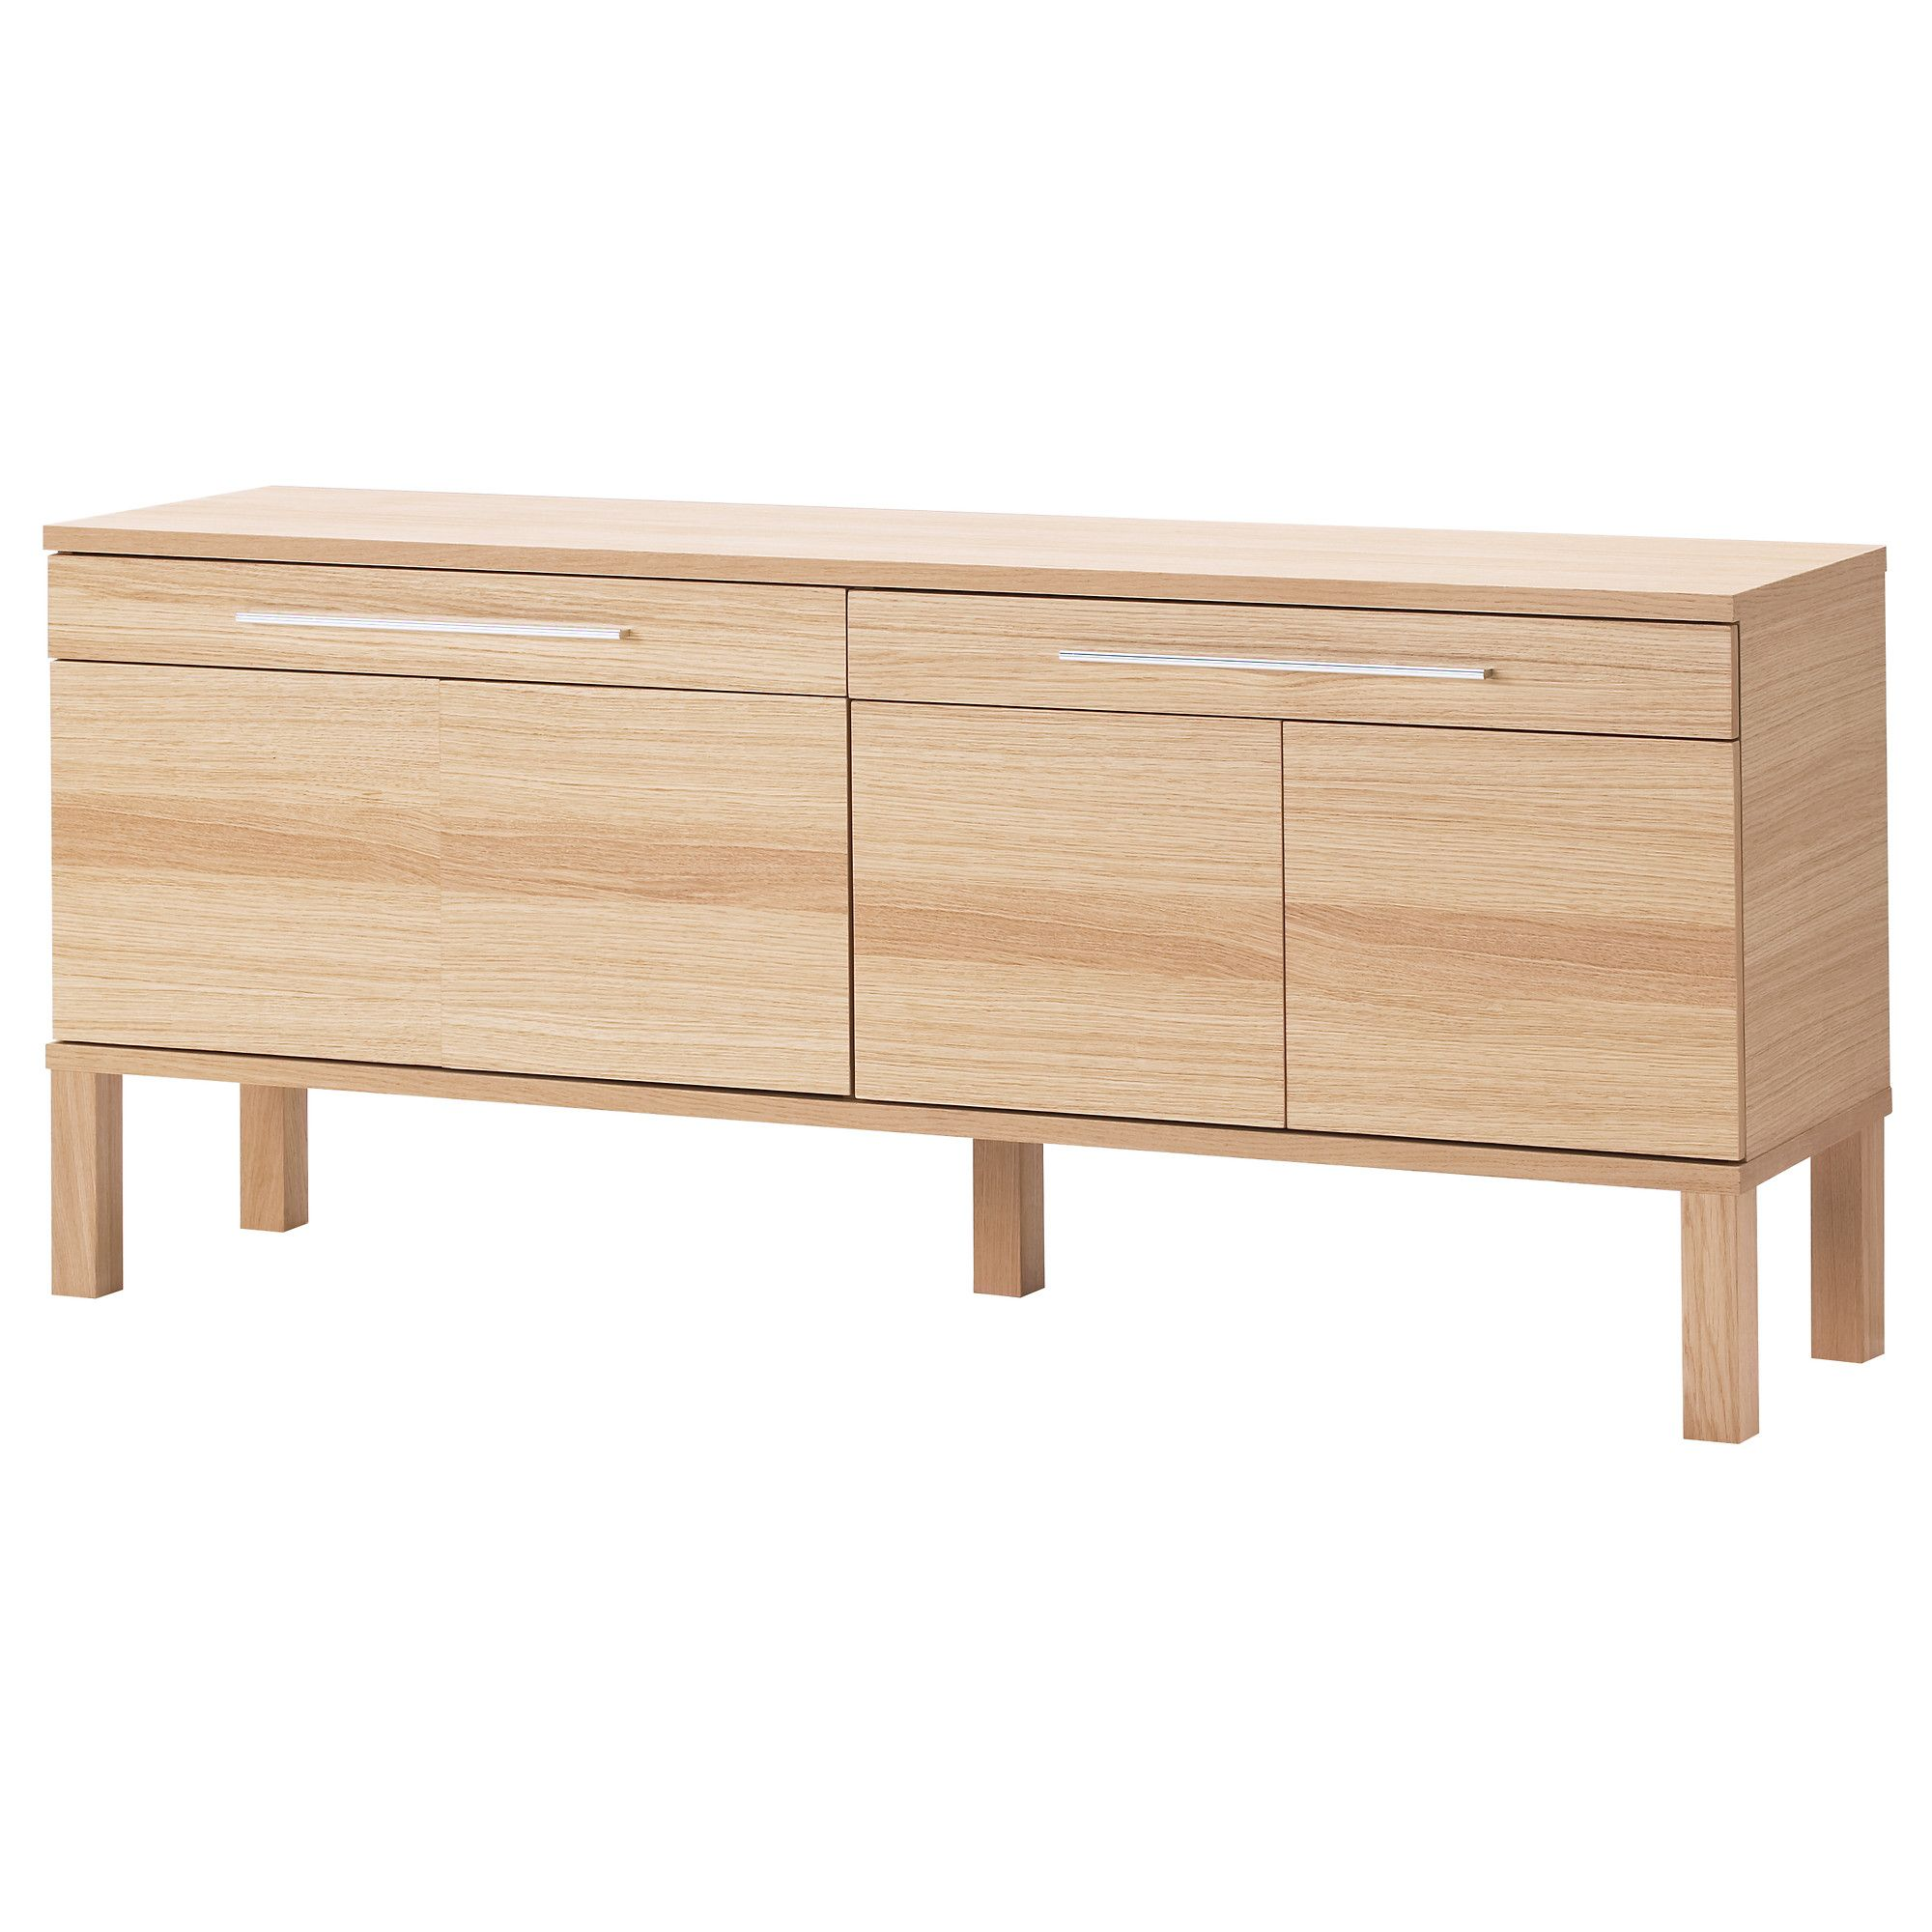 269 bjursta sideboard oak veneer ikea studio envy for Sideboard ikea